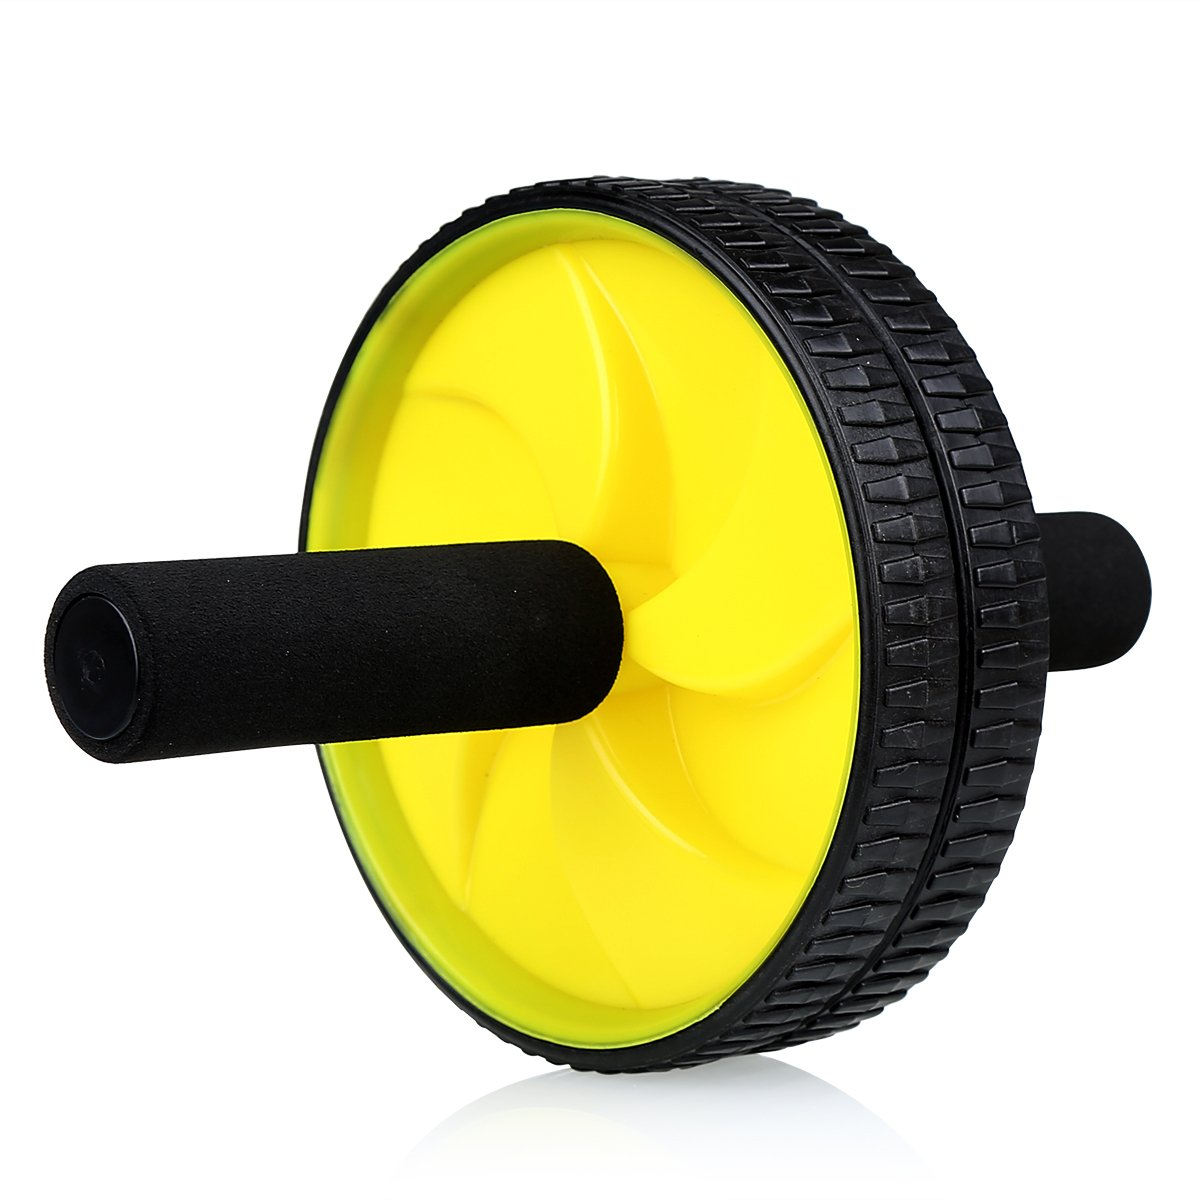 CCBETTER Bauch-Übung Fitness Rad Roller – Core Muscle Schulung